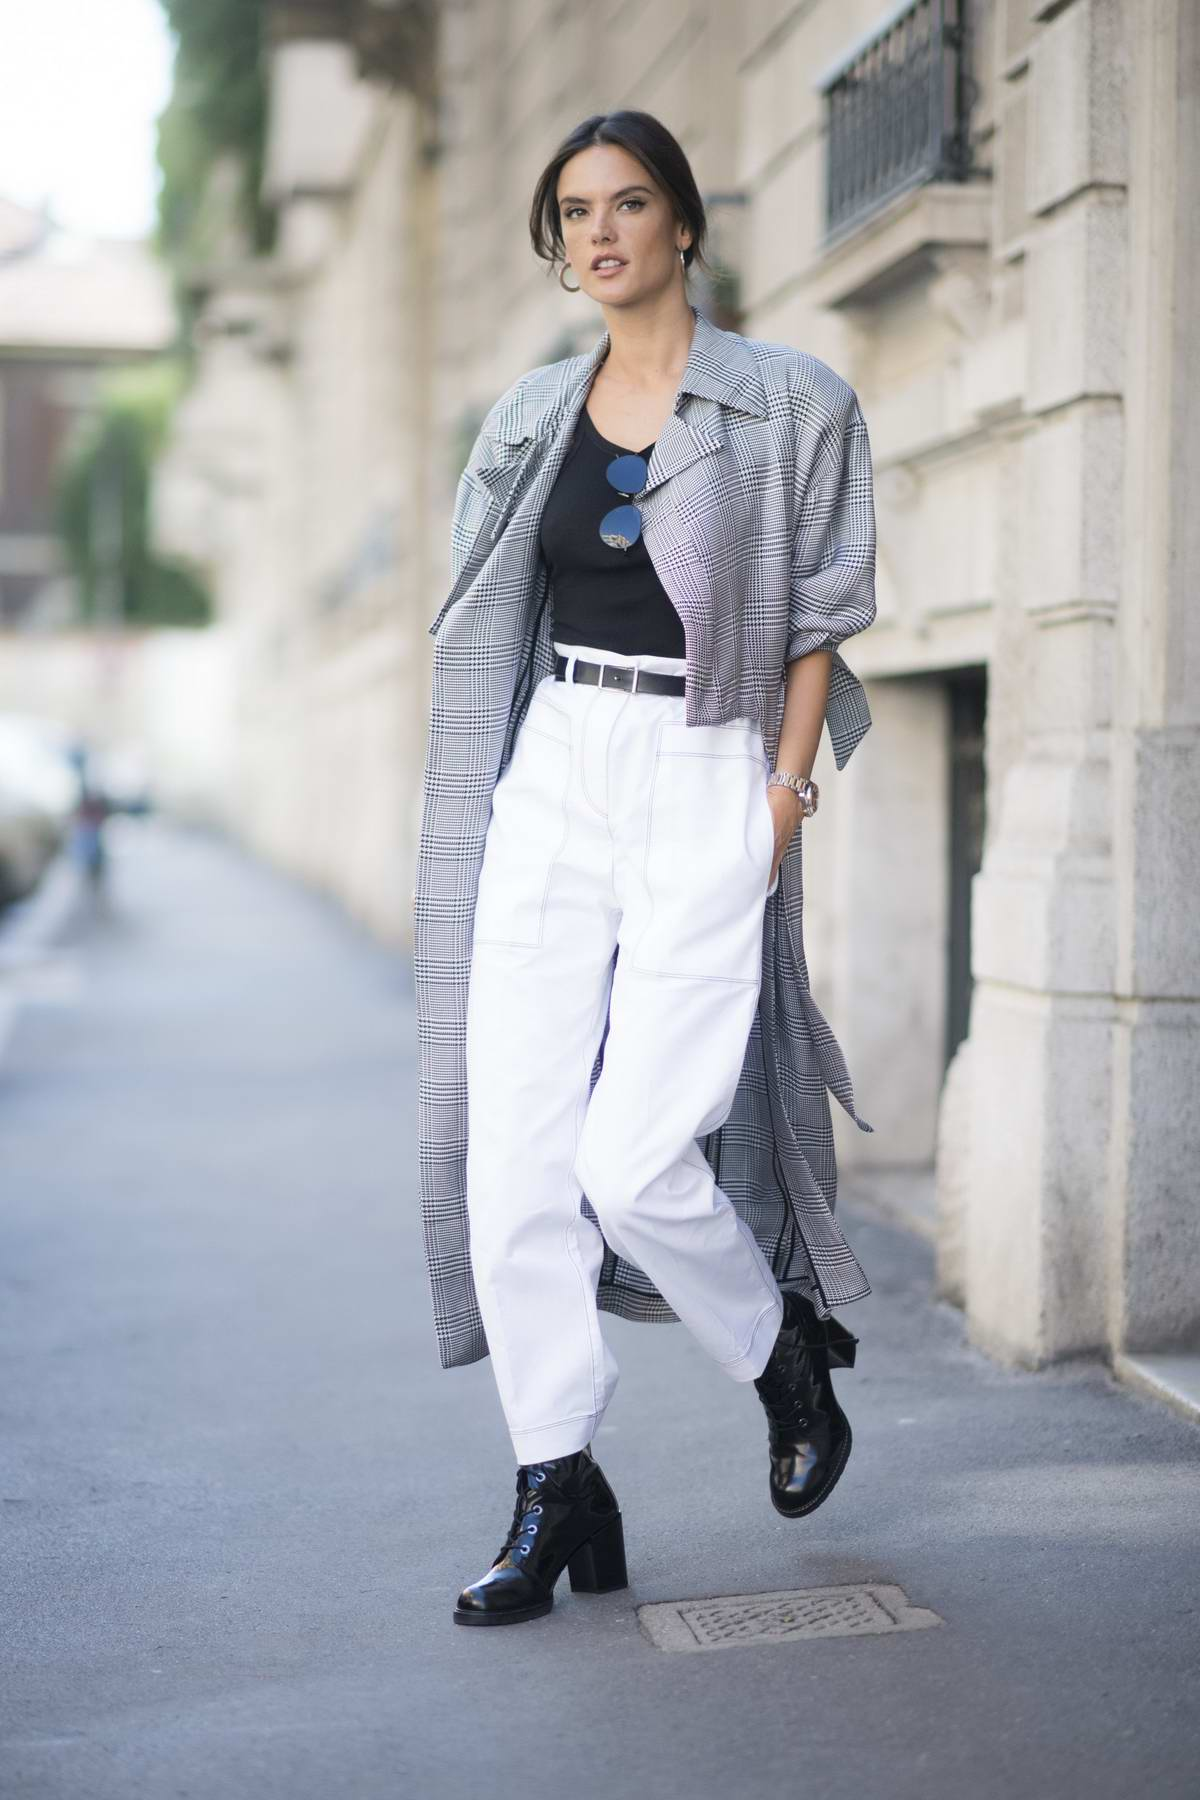 Alessandra Ambrosio out and about during Milan Fashion Week, Italy